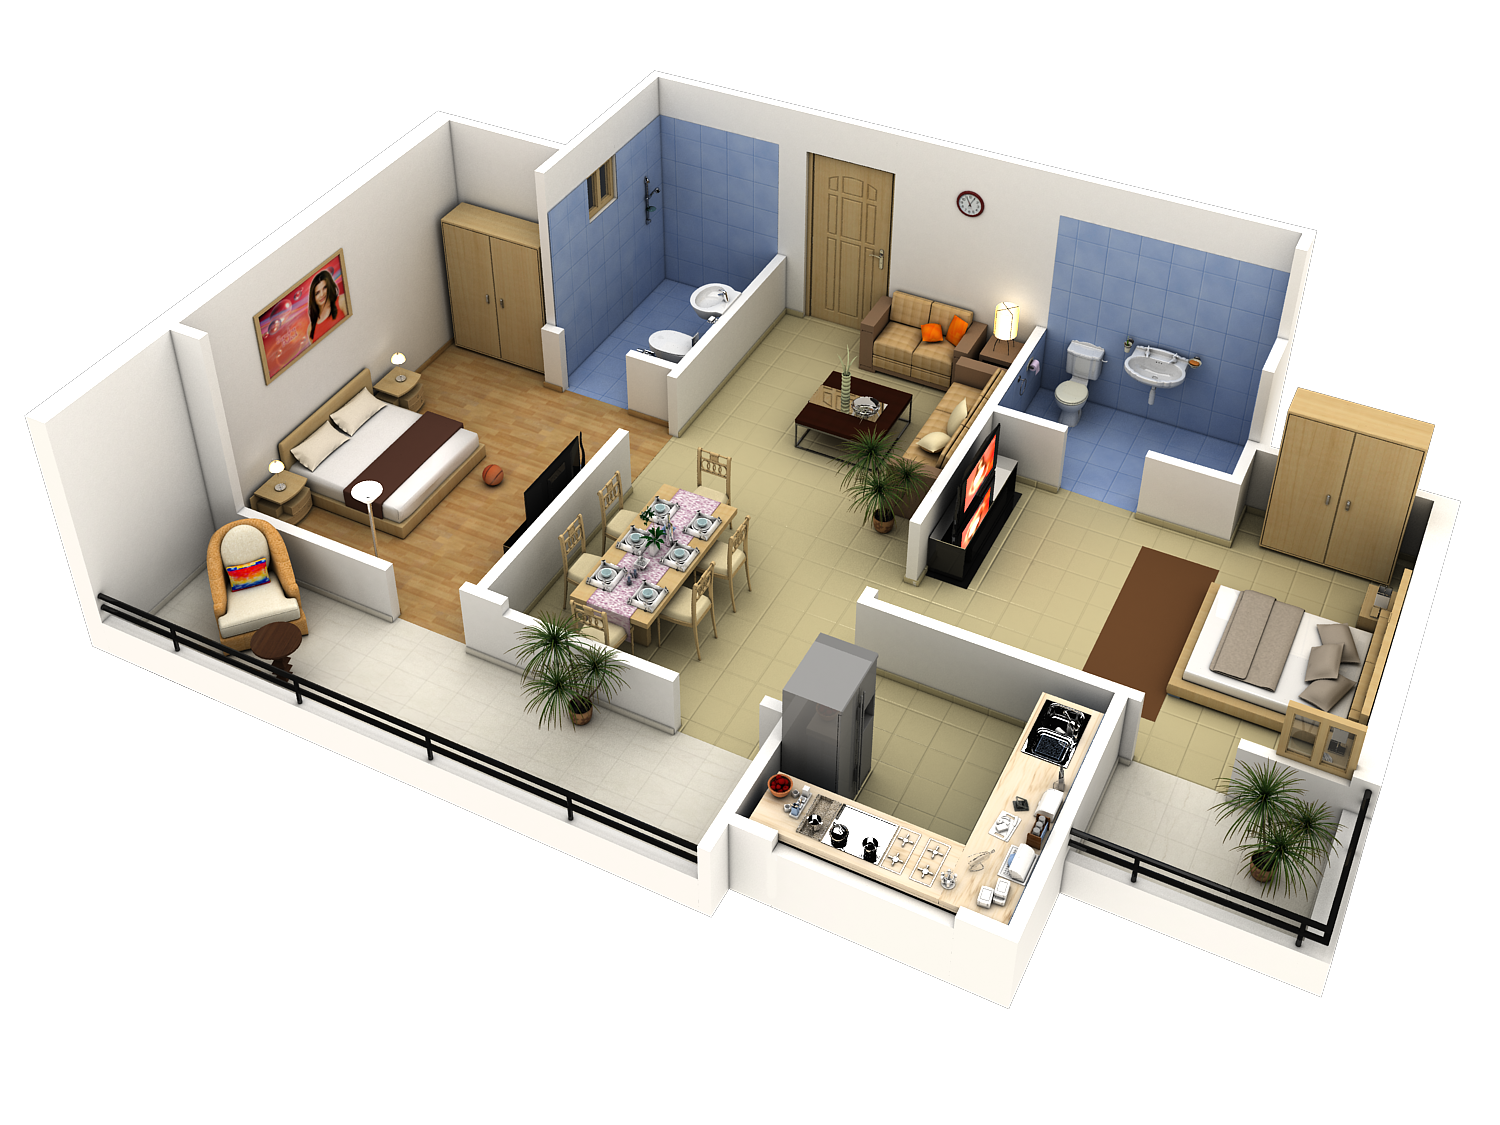 3d floor plans are also a great way for architects realtors and